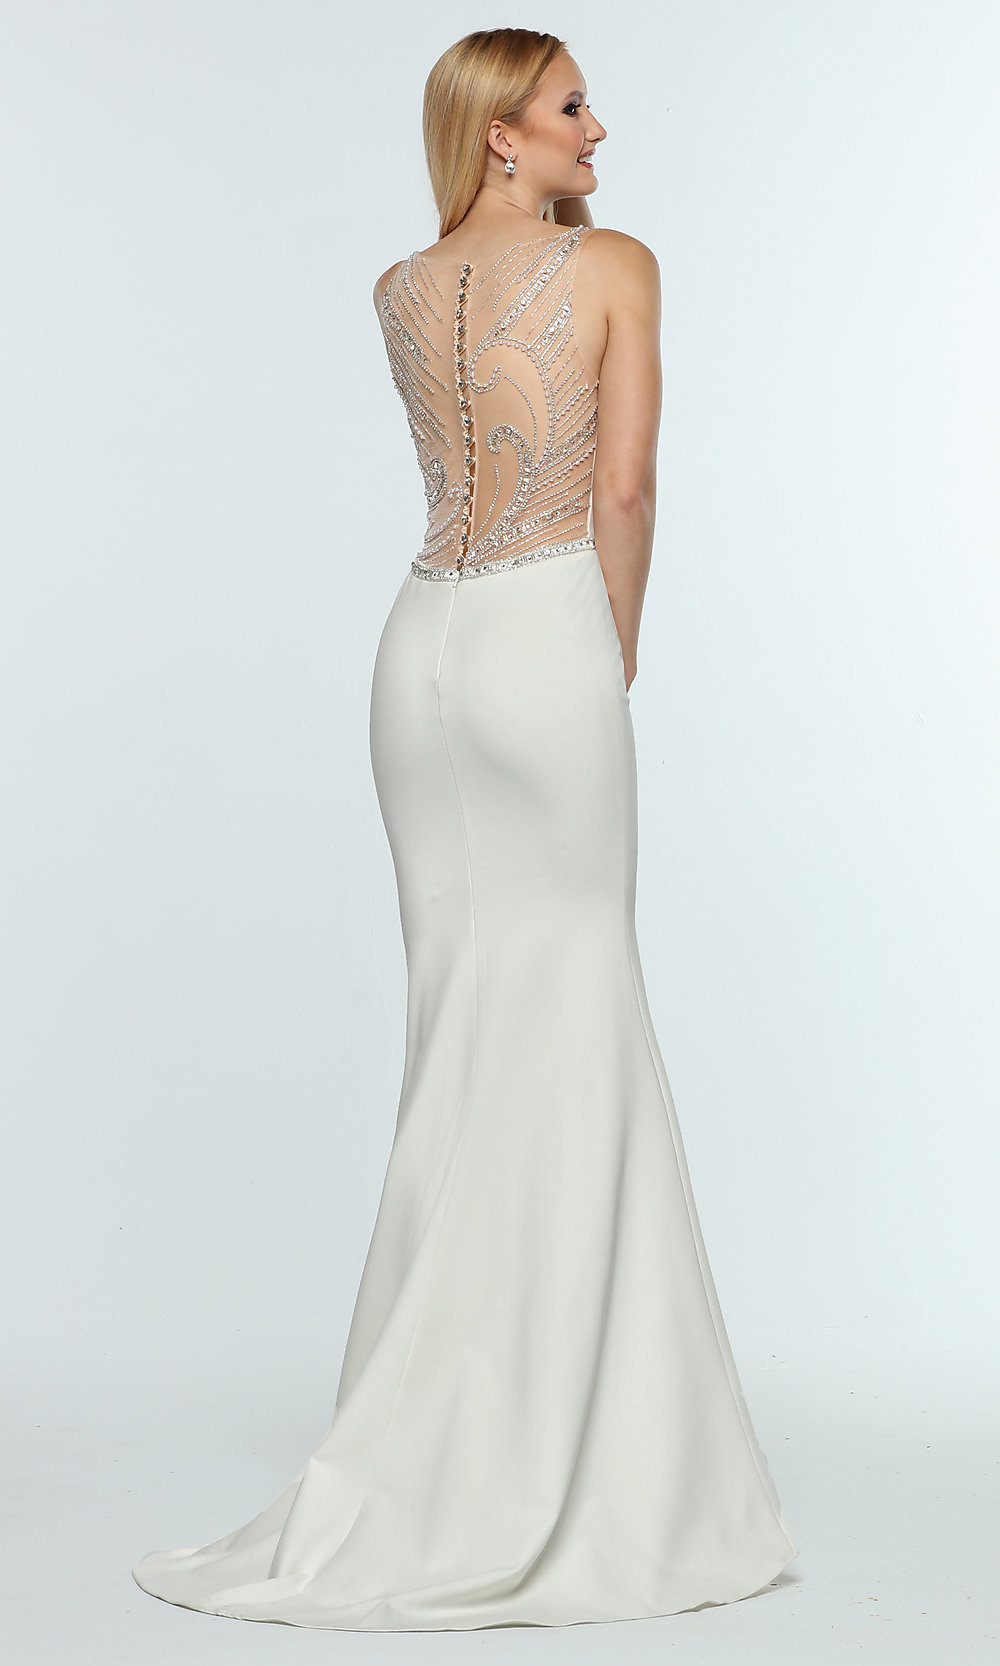 Long Zoey Grey Prom Dress with a Sheer Beaded Back